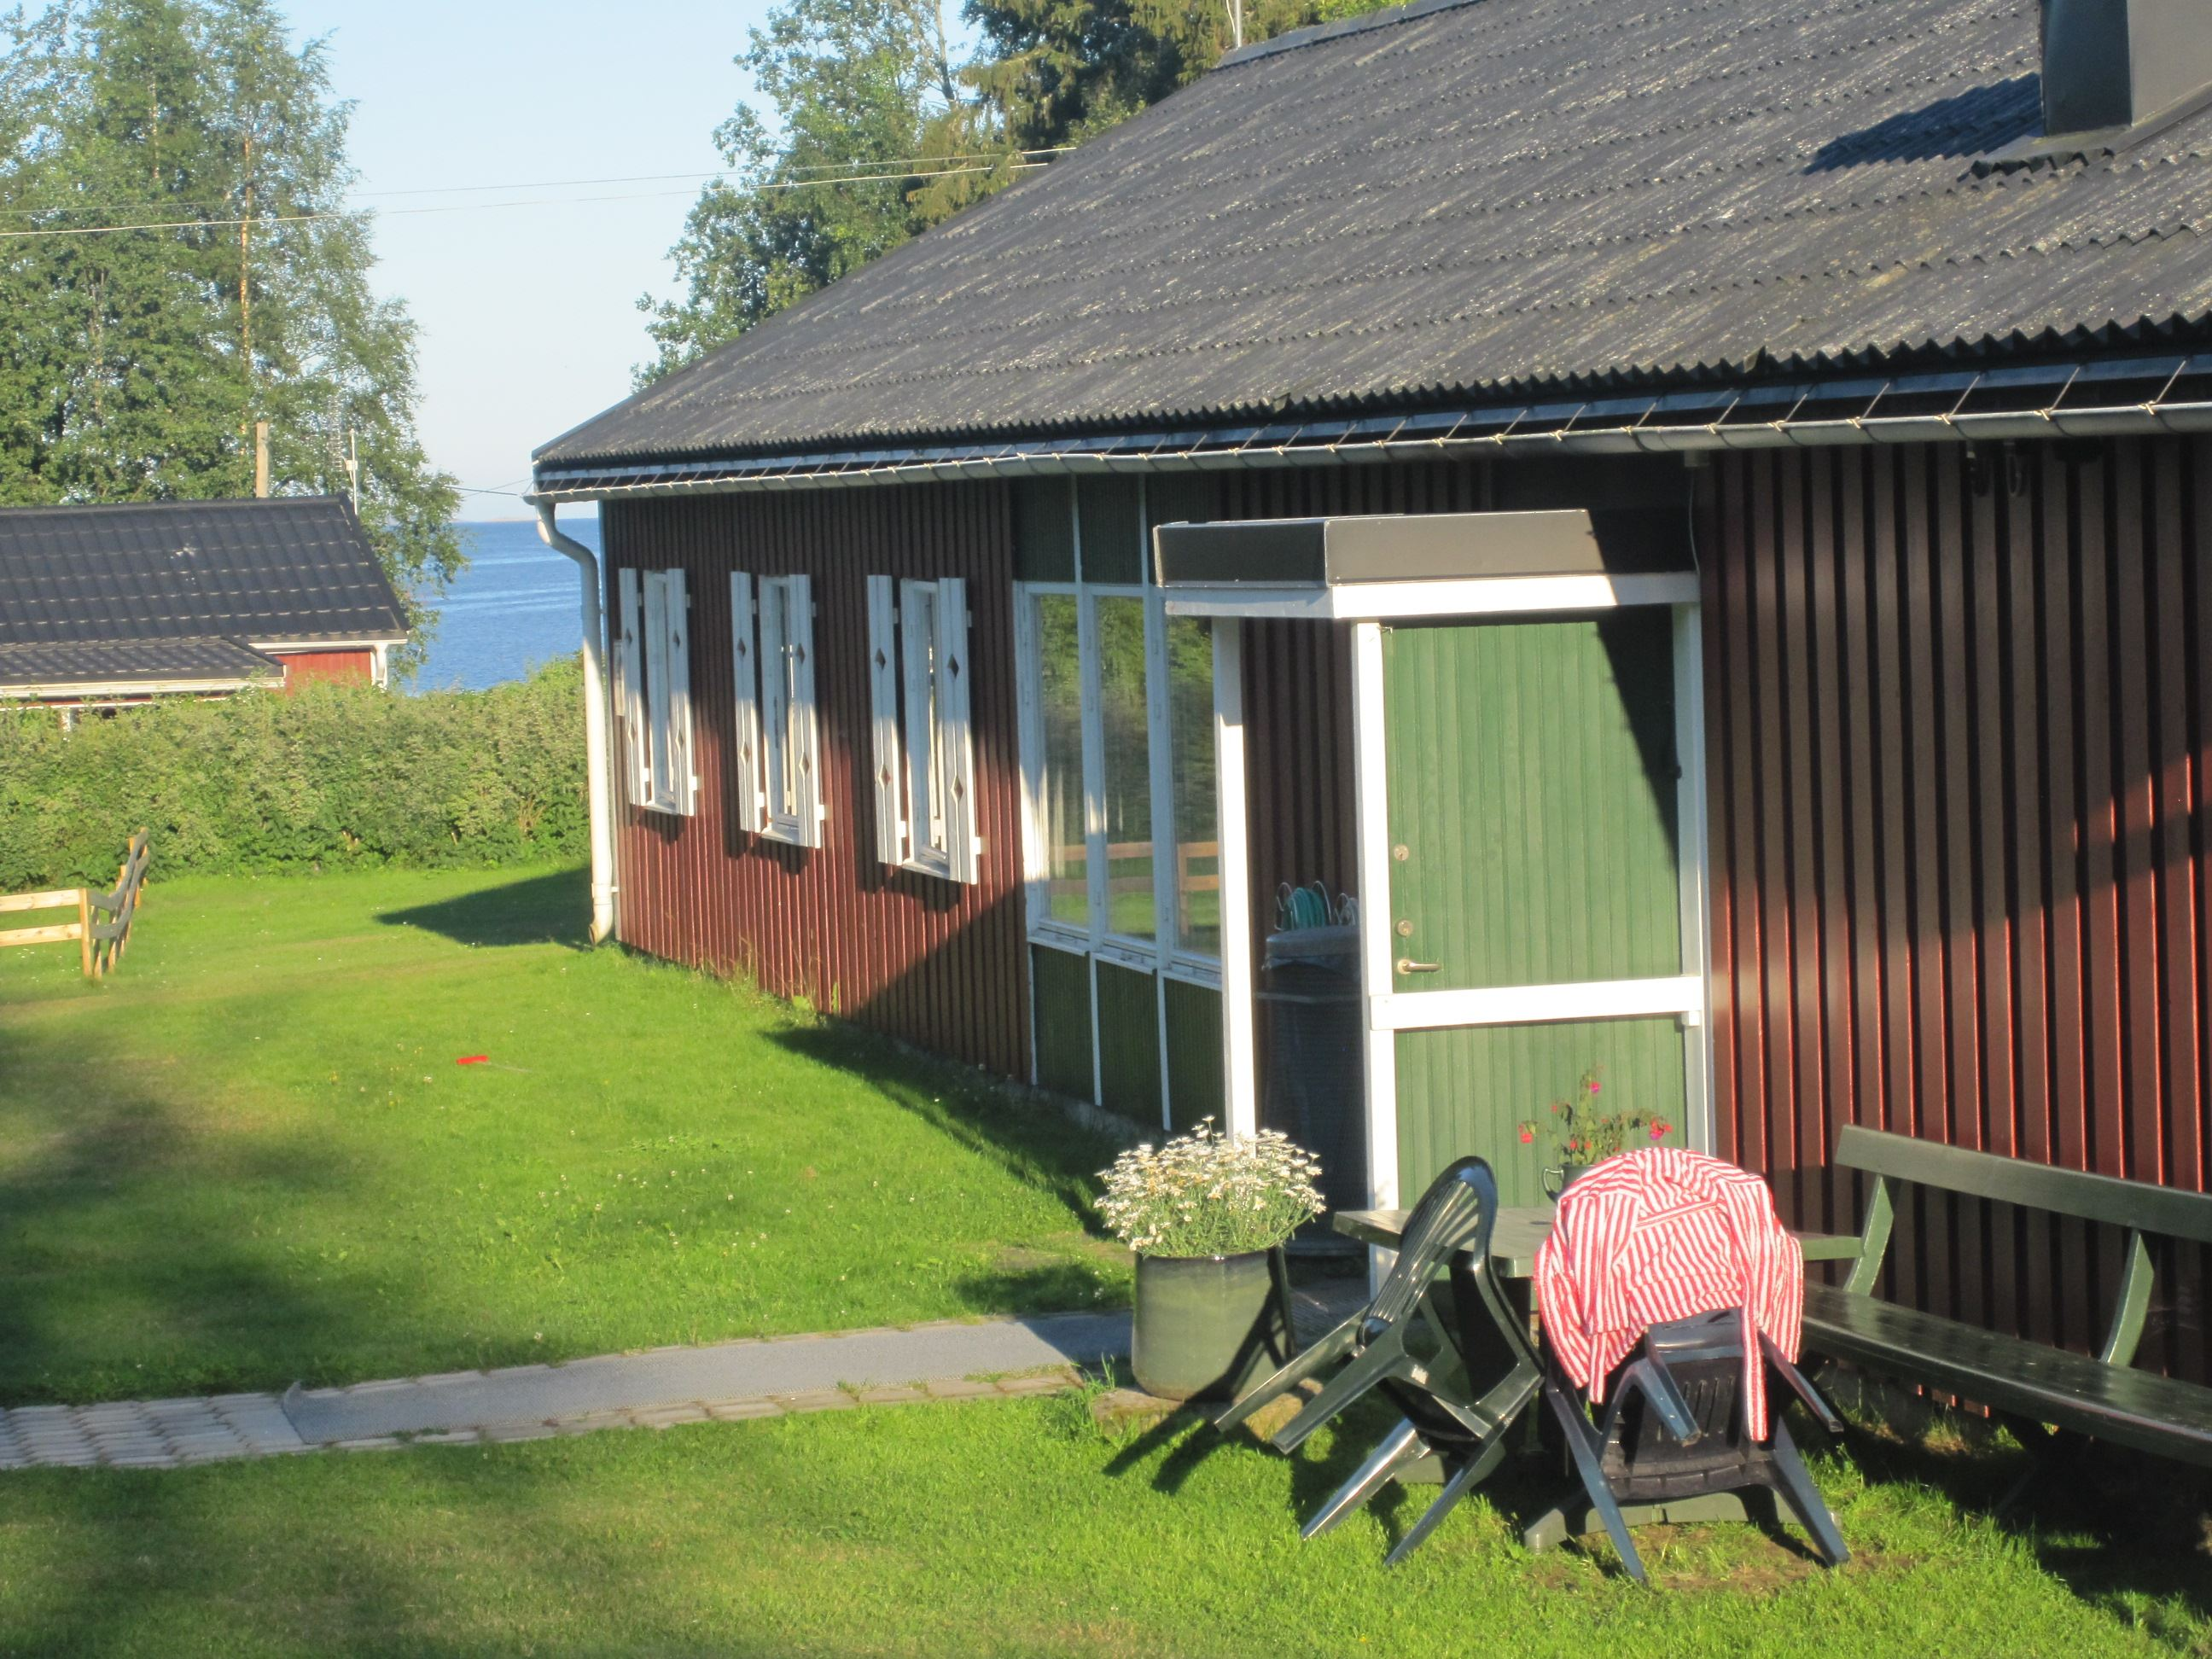 Alnö Youth Hostel - Slädagården